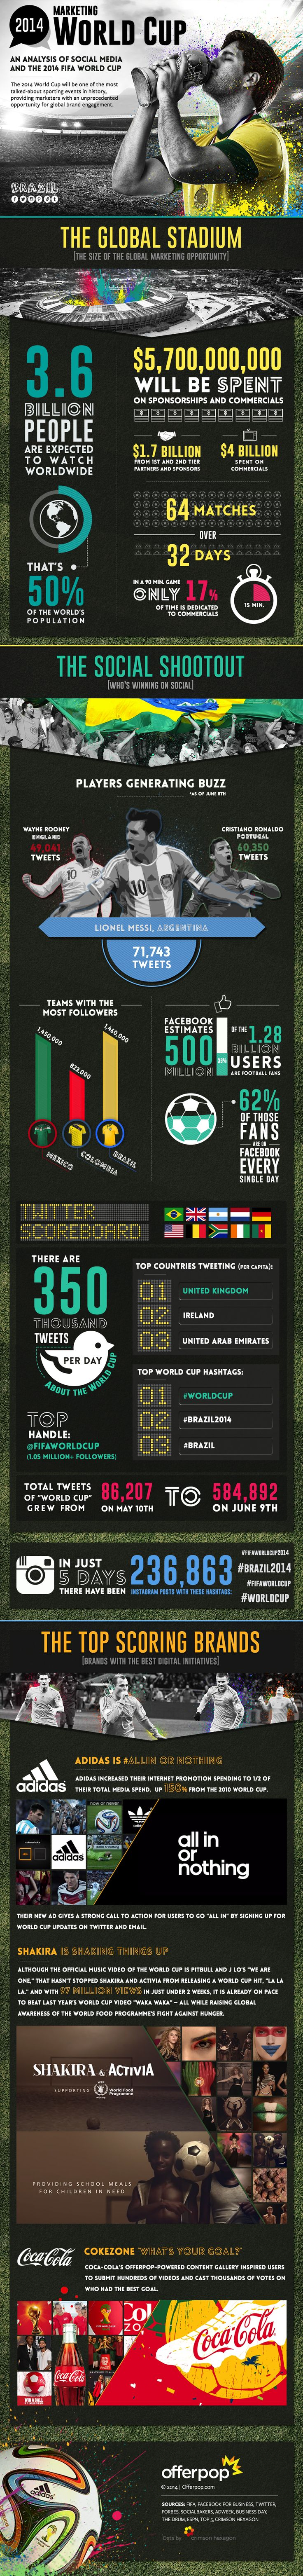 An Analysis of Social Media in the 2014 FIFA World Cup